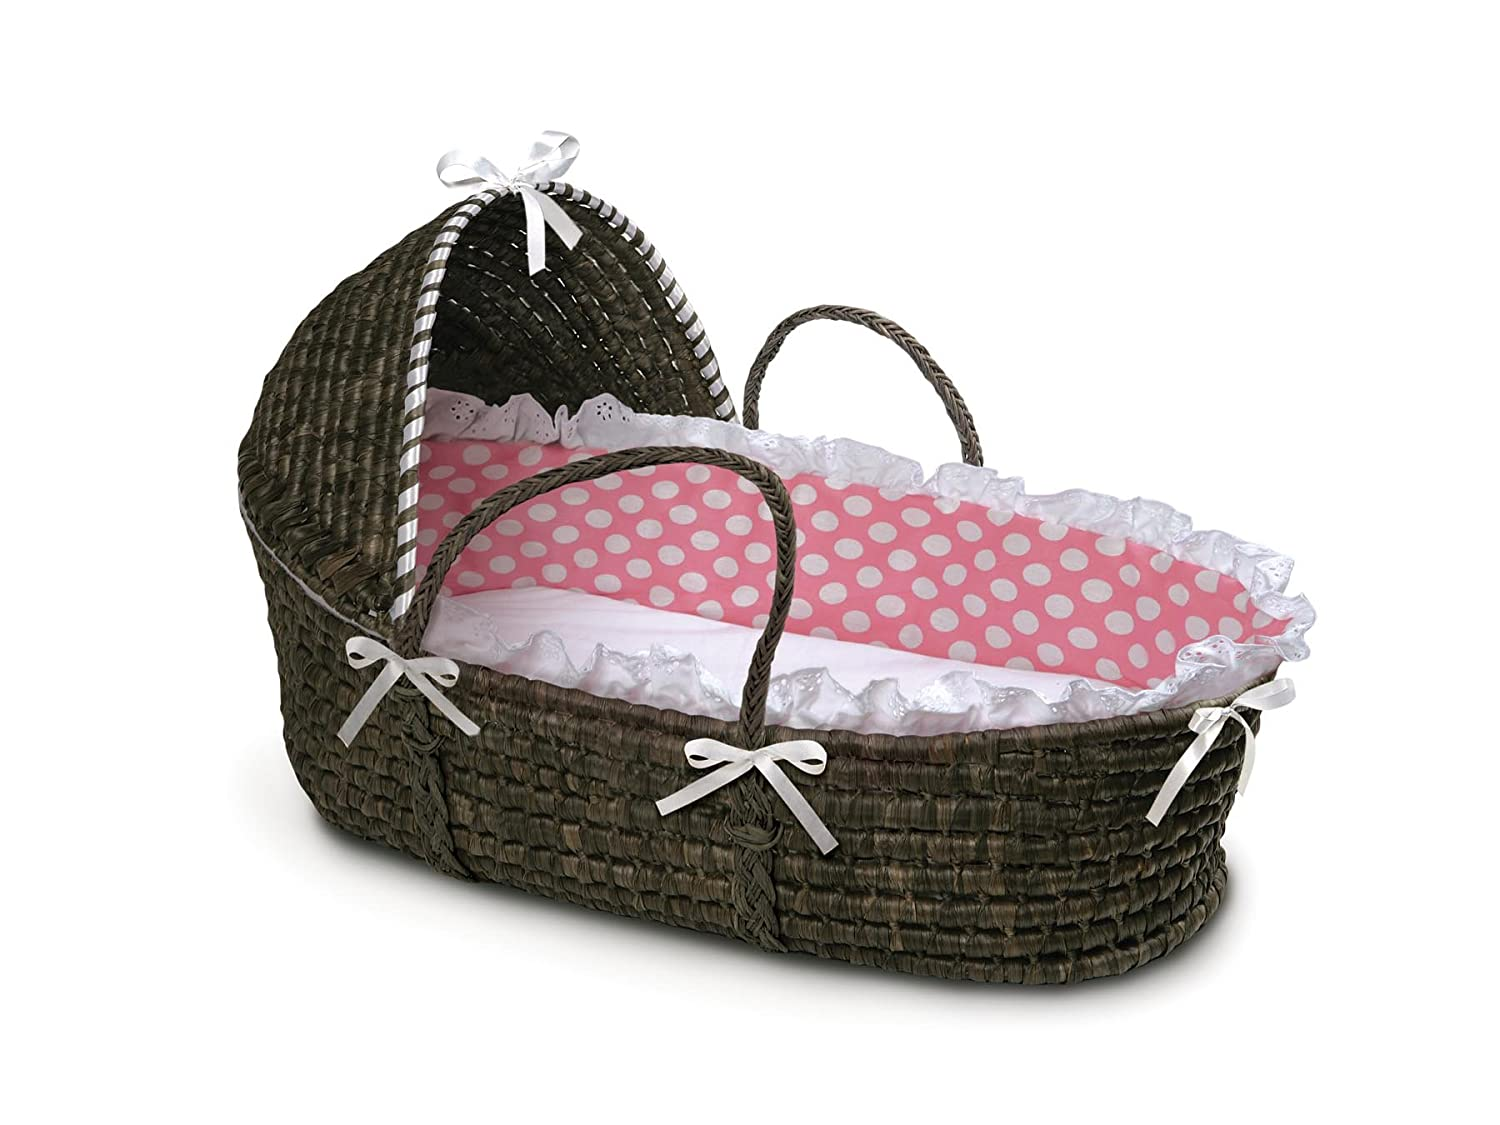 Badger Basket Moses Basket with Polka Dot Hood and Bedding, Natural/Brown 00961